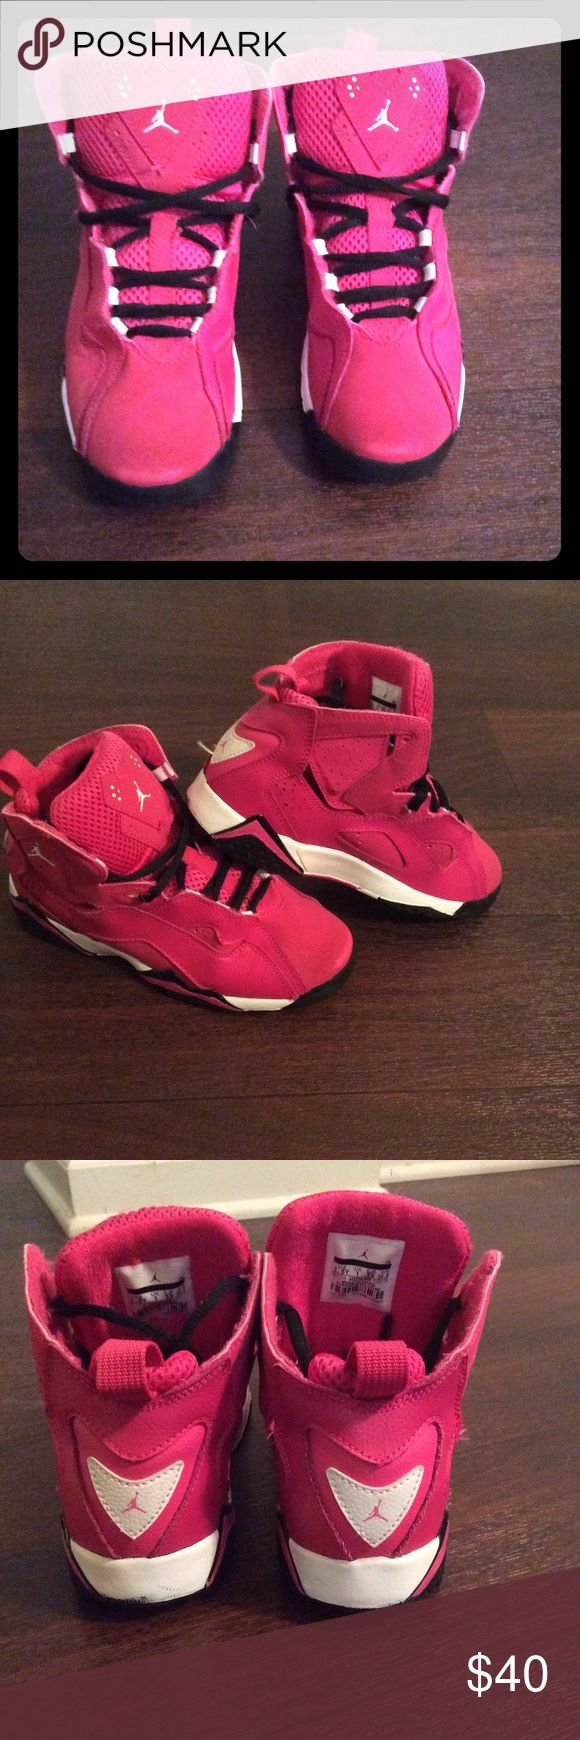 Jordan Retro 7 Girls  Jordan Retro 7 Girls  size 1,5 Youth ... Perfect shoes for Back 2 School  they have someone Minor stains on the front as shown in the pics but overall very clean and great used condition !! Jordan Shoes Athletic Shoes